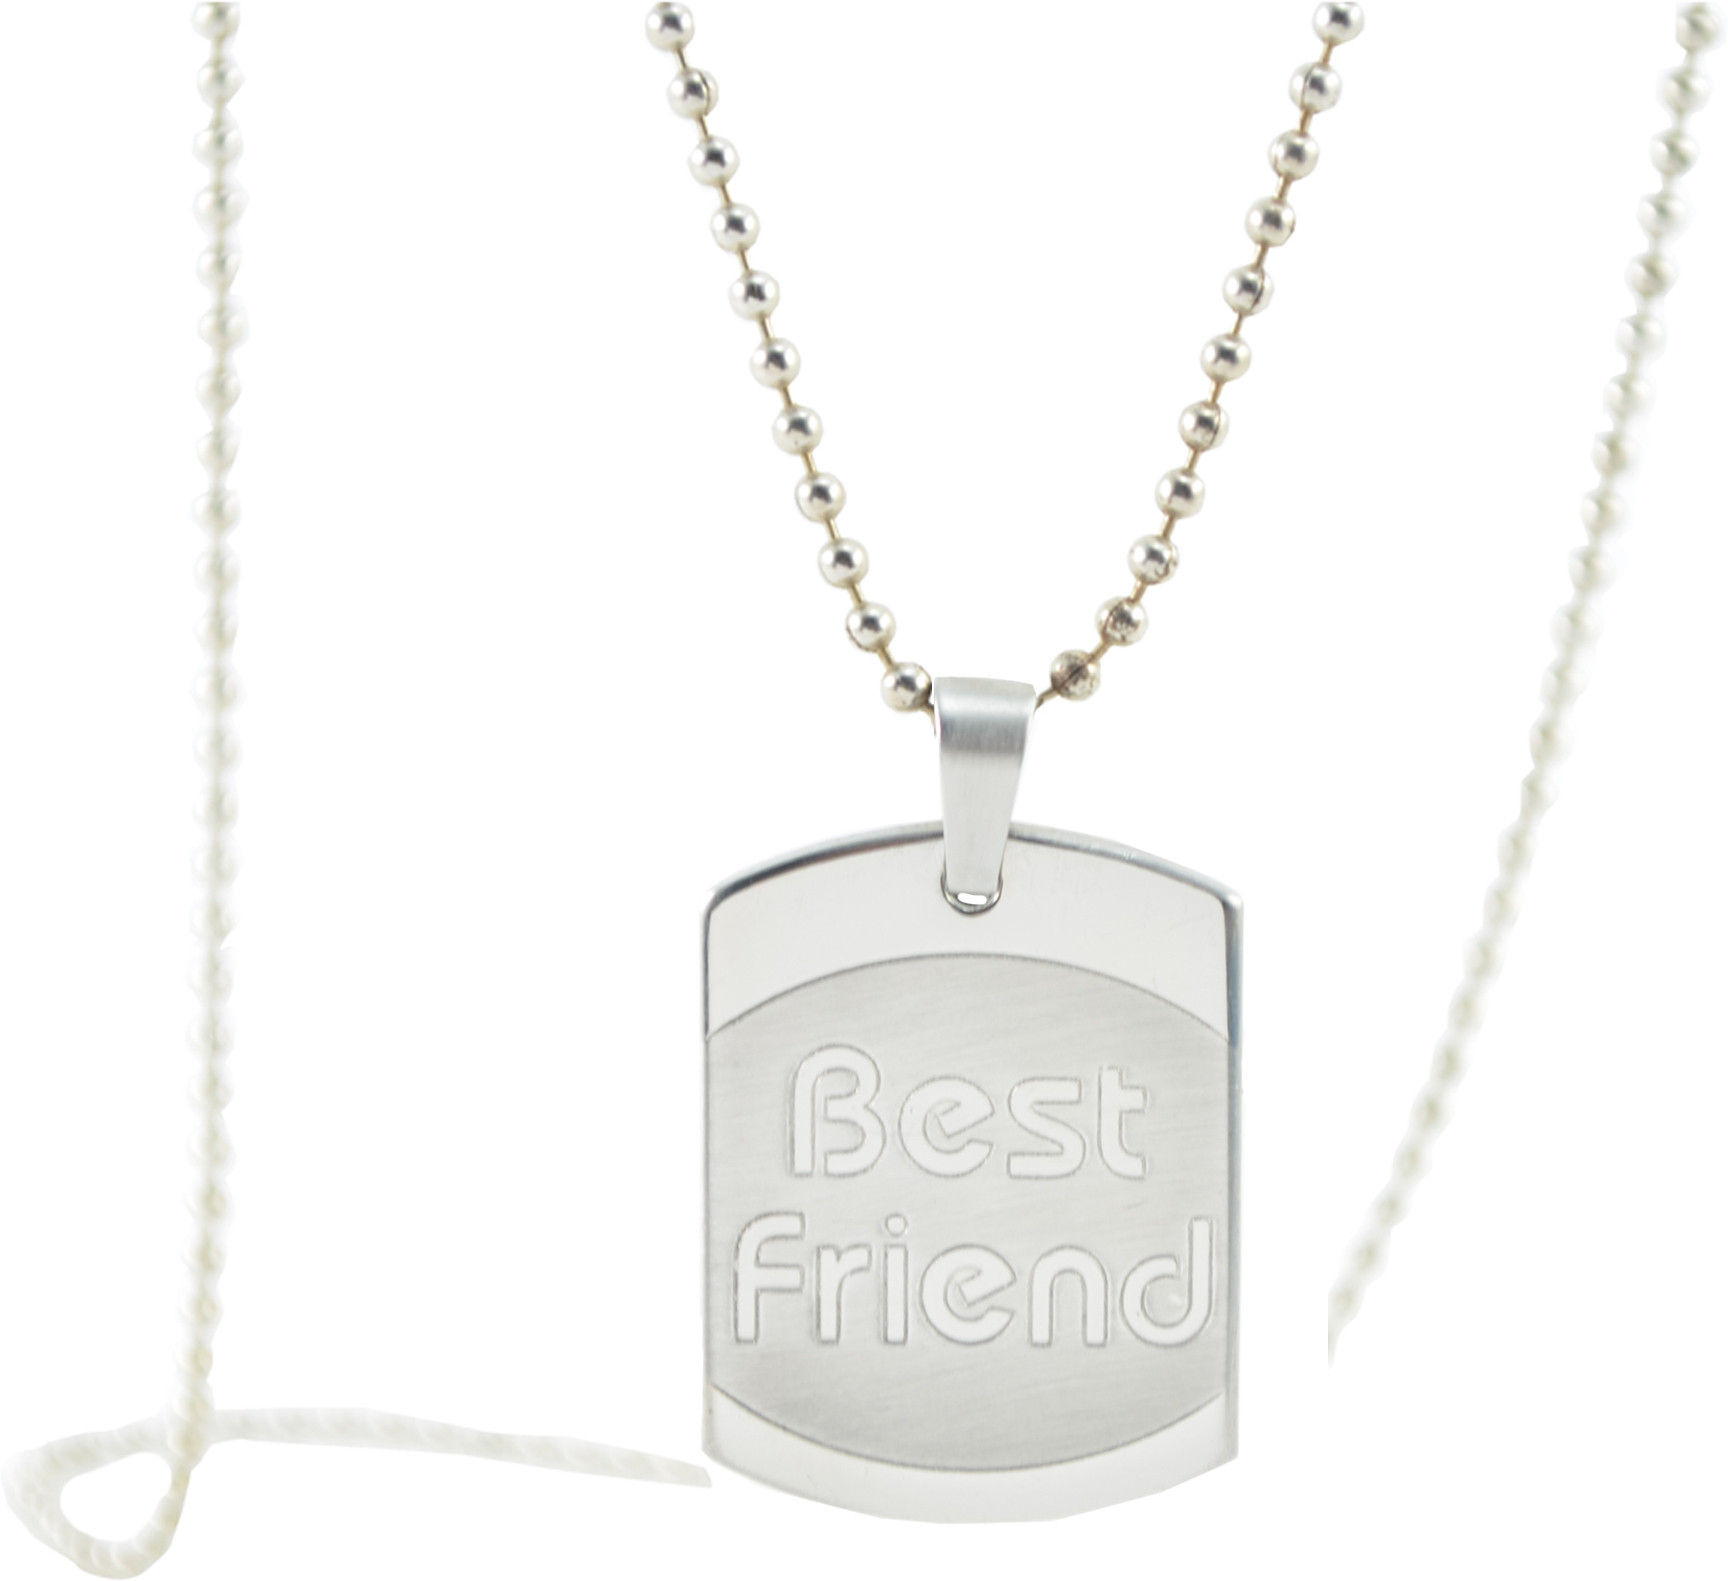 everyday pendants india in friendship price necklace pendant steel online men lockets engraved for jewellery plated buy original mbff at dio silver diovanni stainless designer day ssl